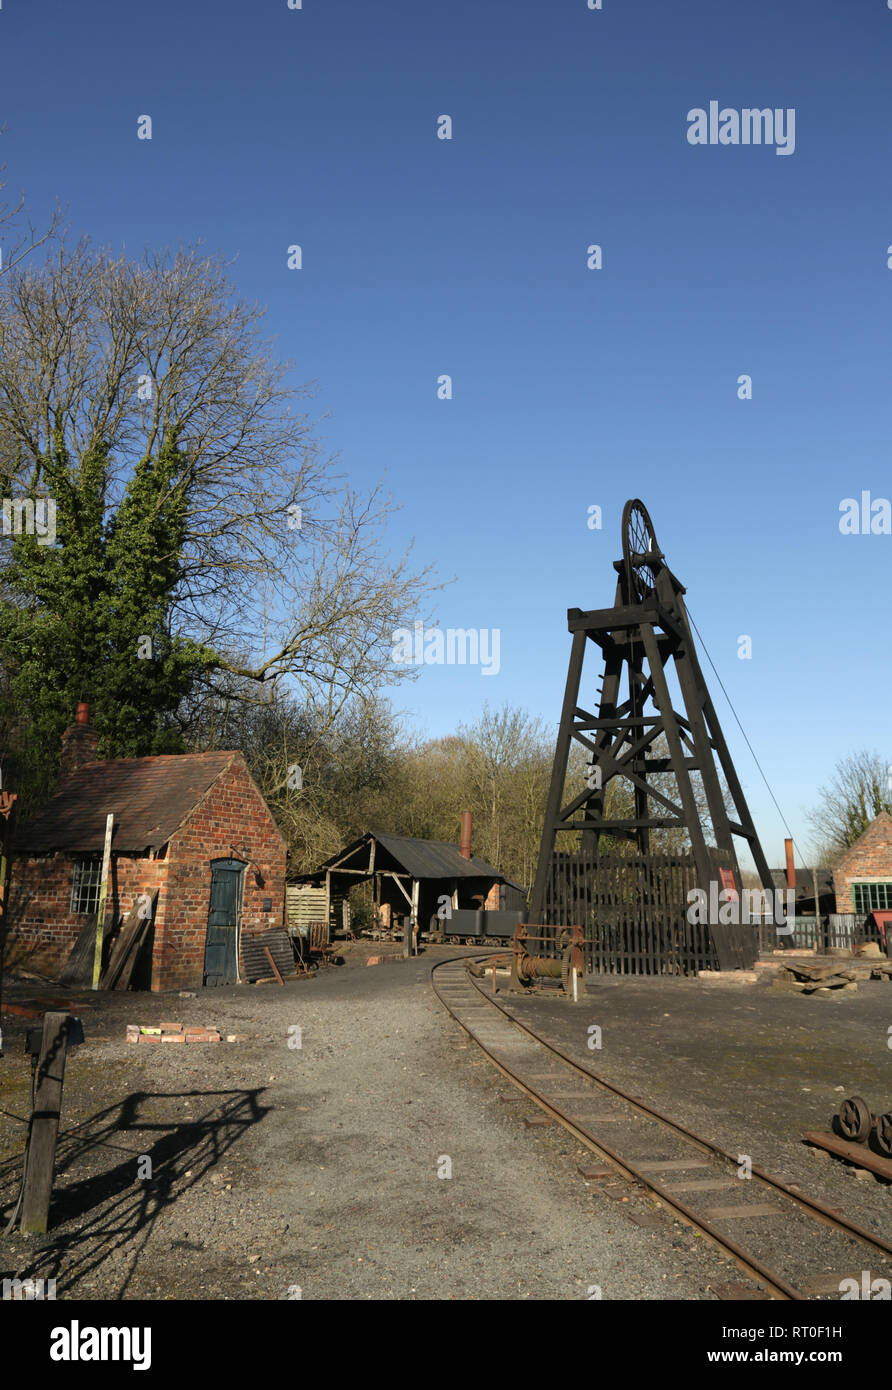 View of the coal mine at the Black country living museum, Dudley, West midlands, England, UK. - Stock Image